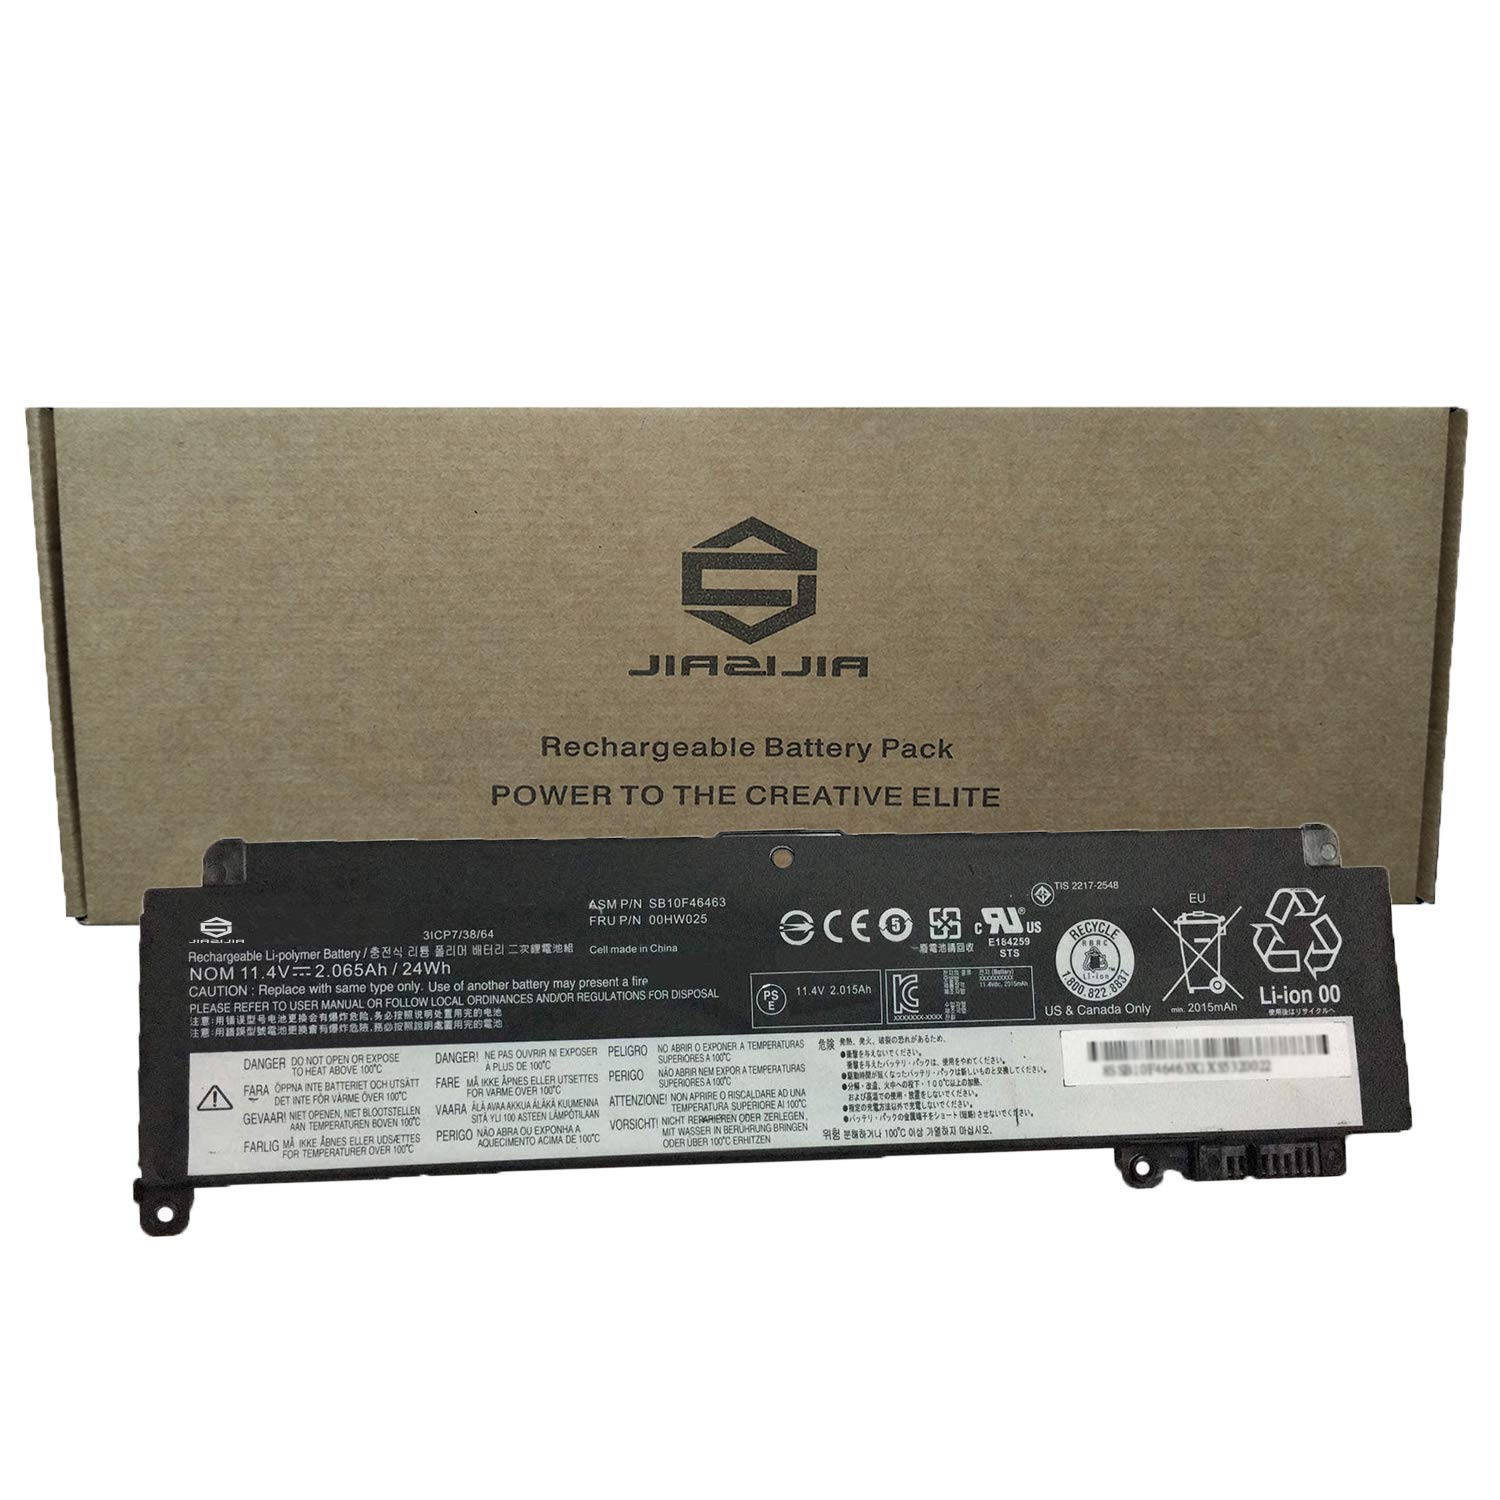 JIAZIJIA Compatible Laptop Battery with Lenovo 00HW025 [11.4V 24Wh 2065mAh] ThinkPad T460S T470S Series Notebook SB10F46463 Black - 1 Year Warranty